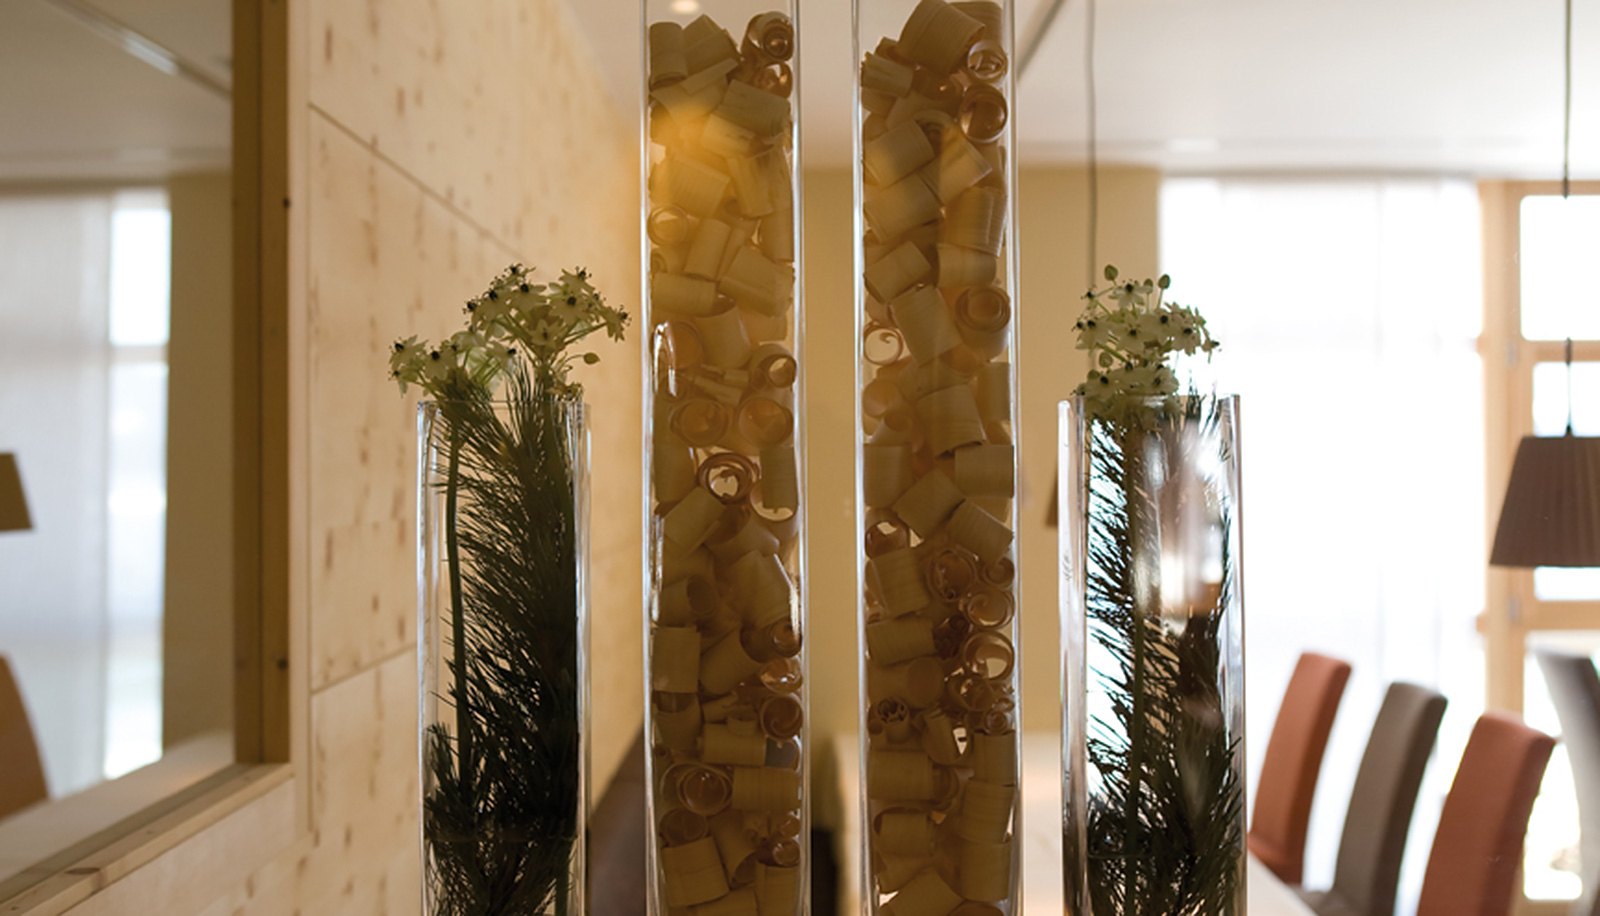 Decoration with woodchips and flowers in tall glass vases